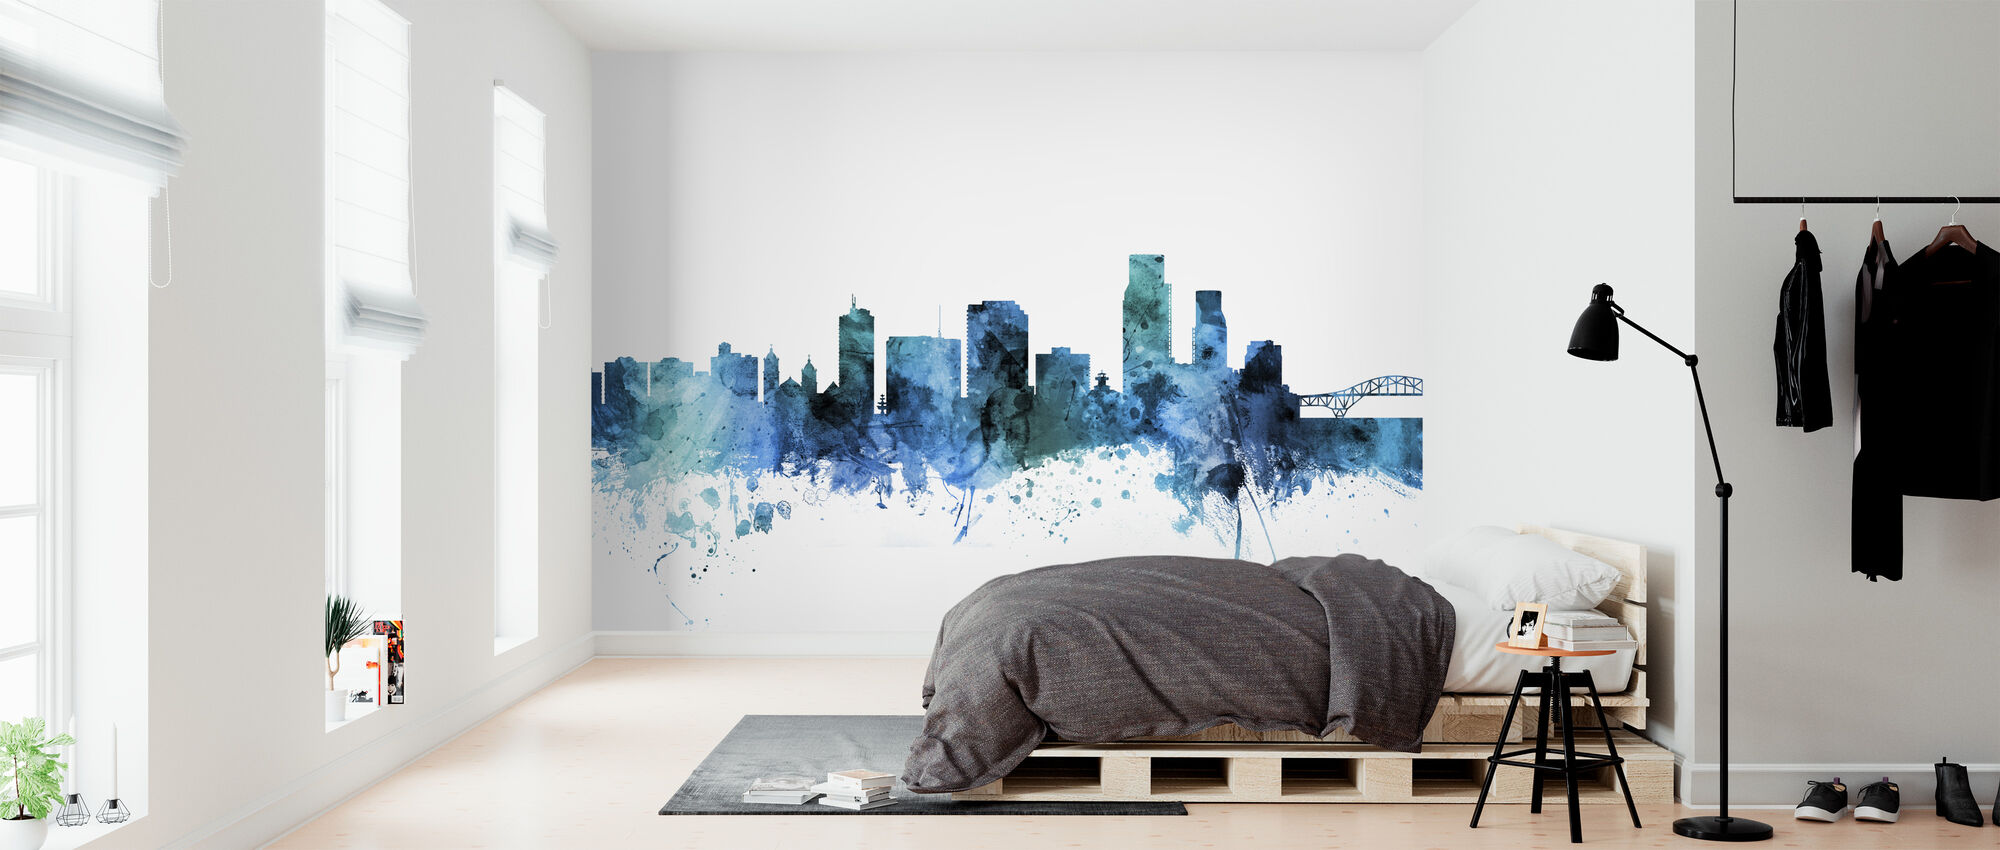 Corpus Christie Texas Skyline - Behang - Slaapkamer